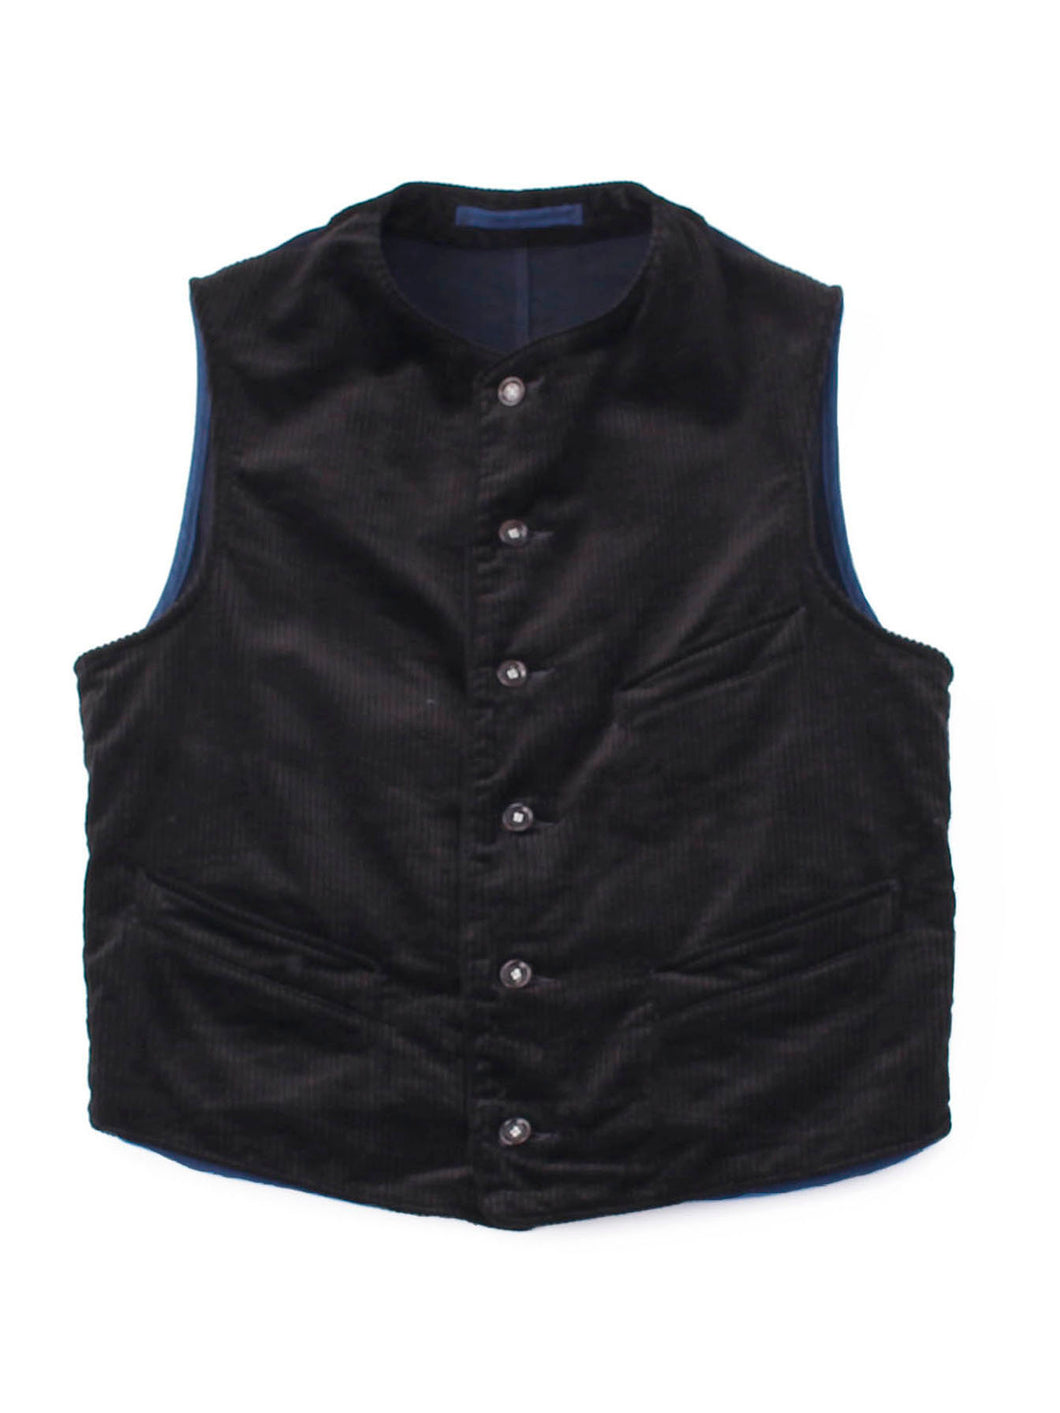 Corduroy x Mugi Satin Cotton 908 Vest in black and indigo